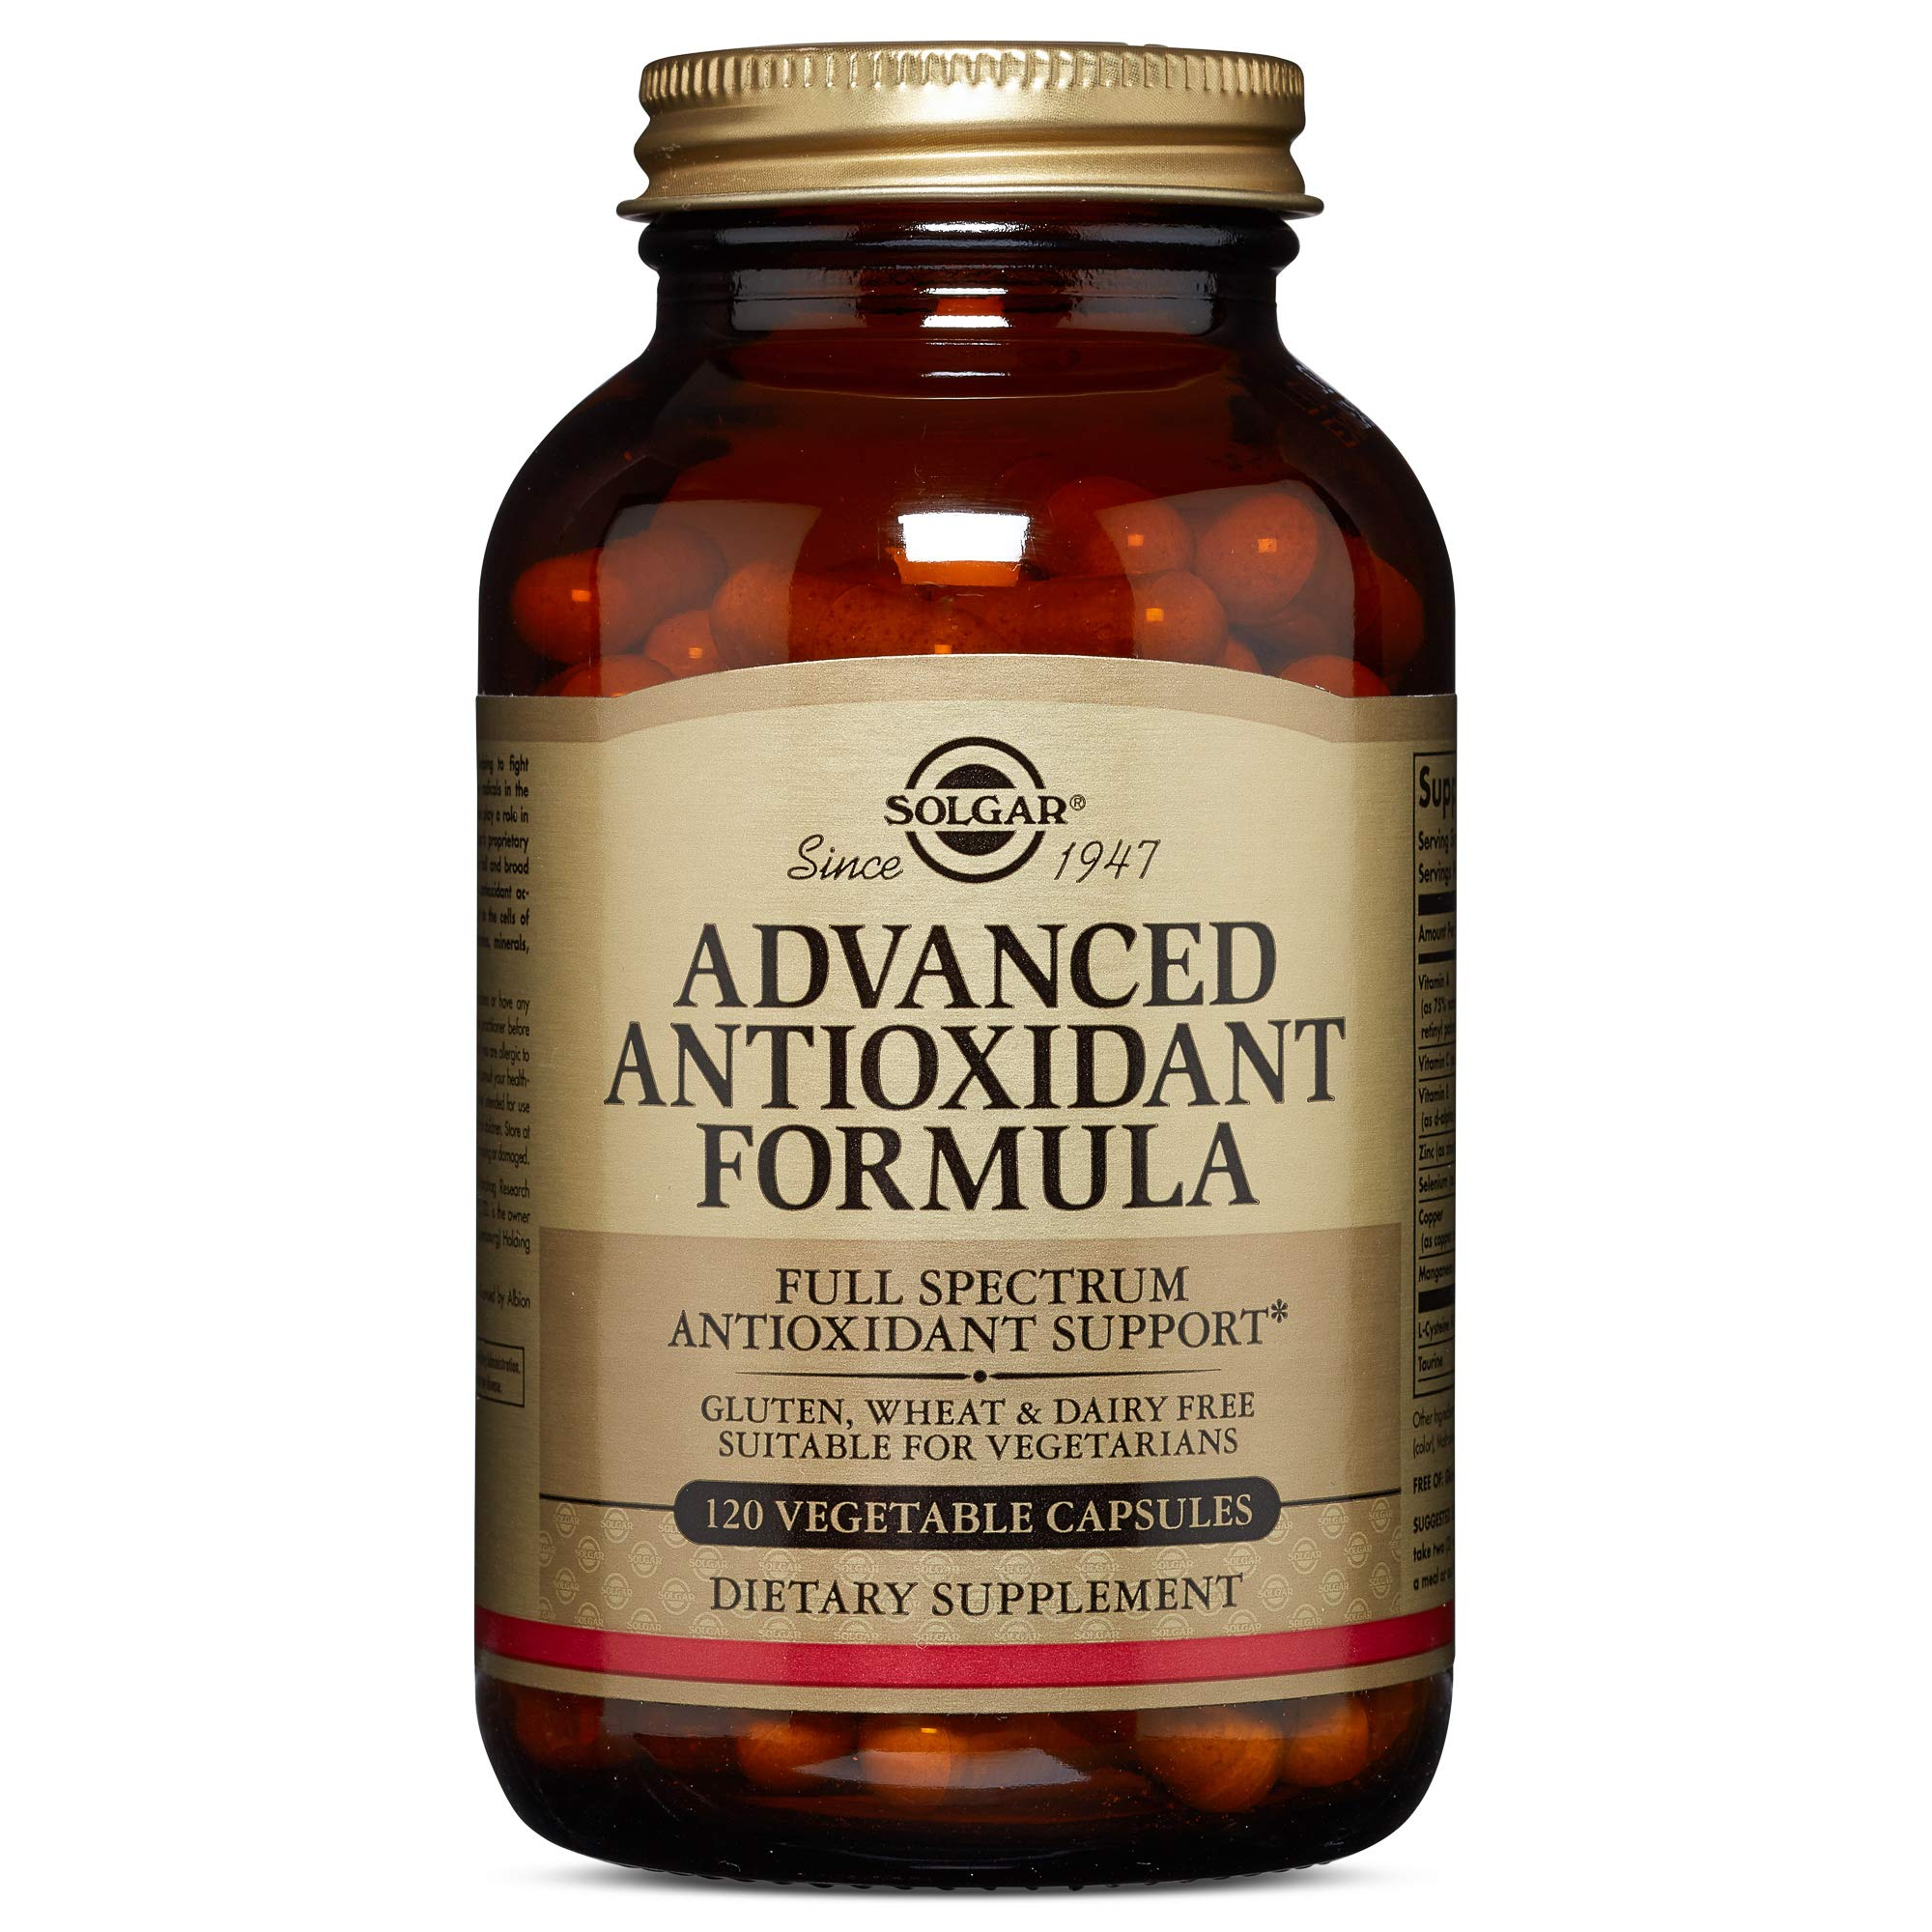 Solgar - Advanced Antioxidant Formula, 120 Vegetable Capsules by Solgar